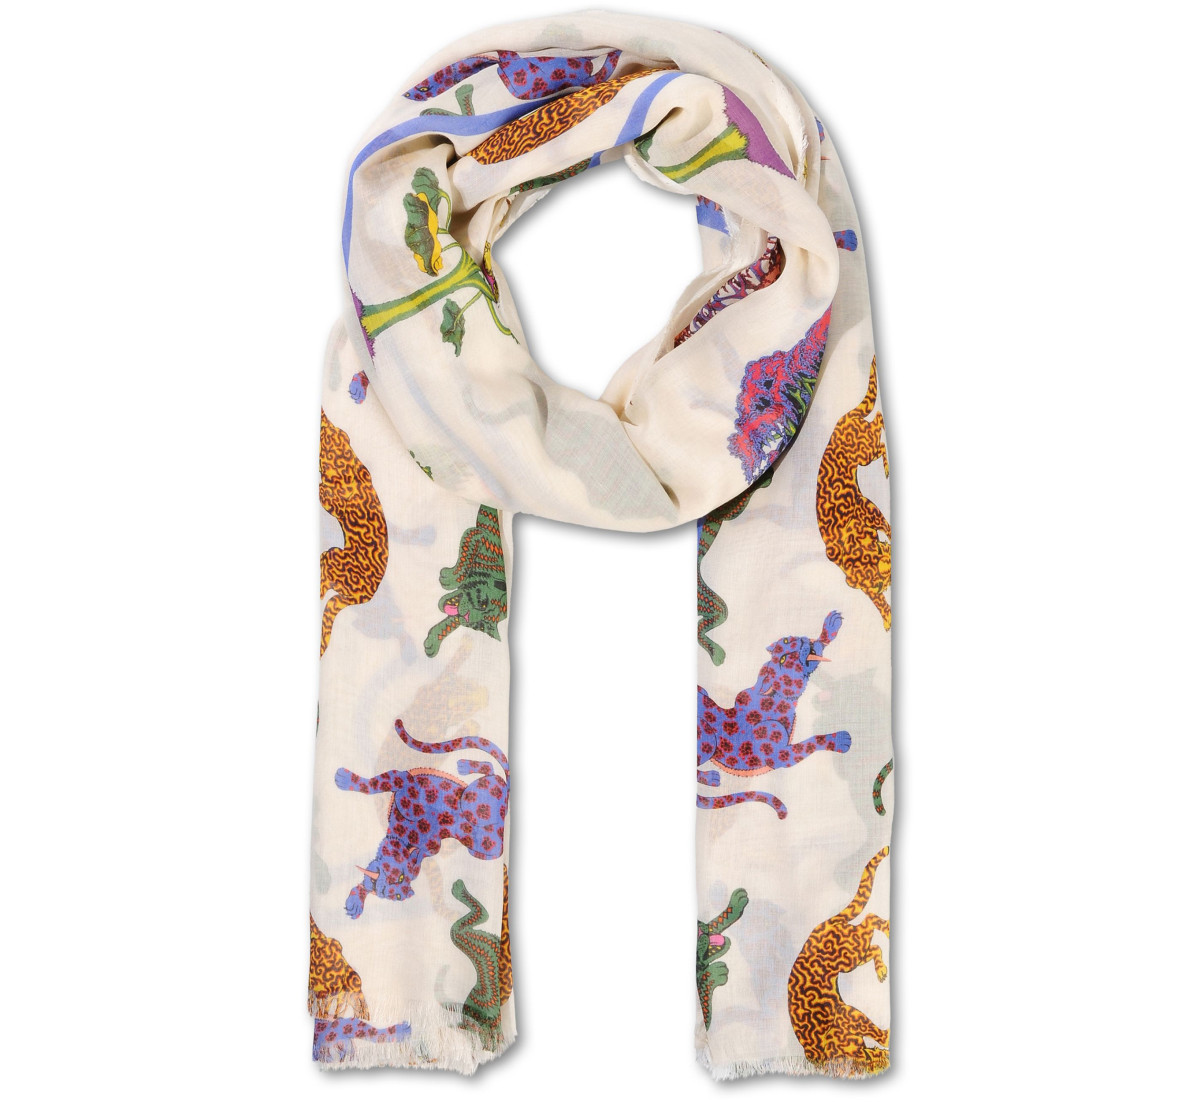 "Will Sweeney / Product & Licensing / Stella McCartney Scarf<span class=""slide_numbers""><span class=""slide_number"">1</span>/3</span>"